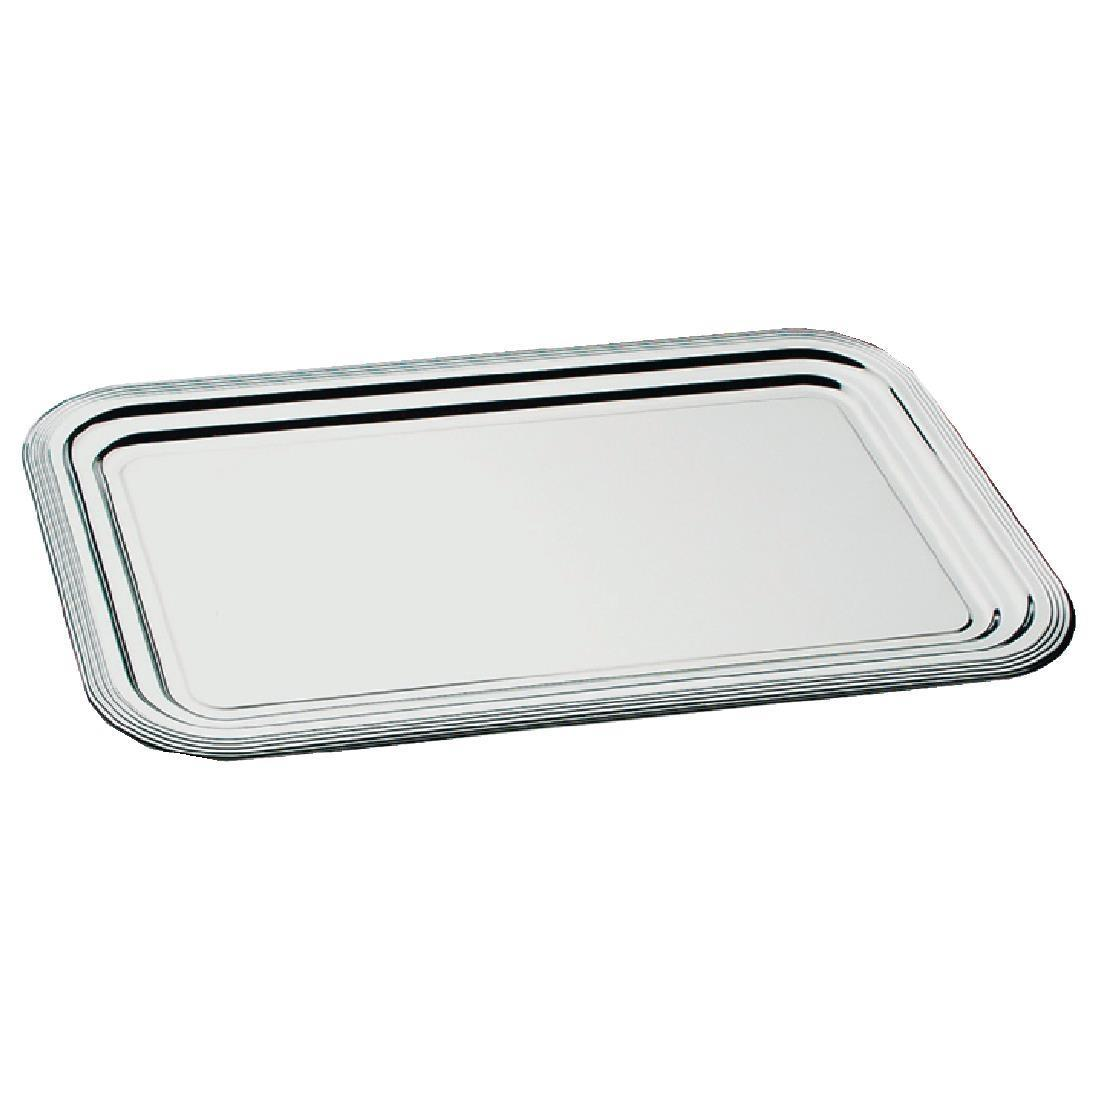 APS Semi-Disposable Party Tray GN 1/1 Chrome - Each - F764